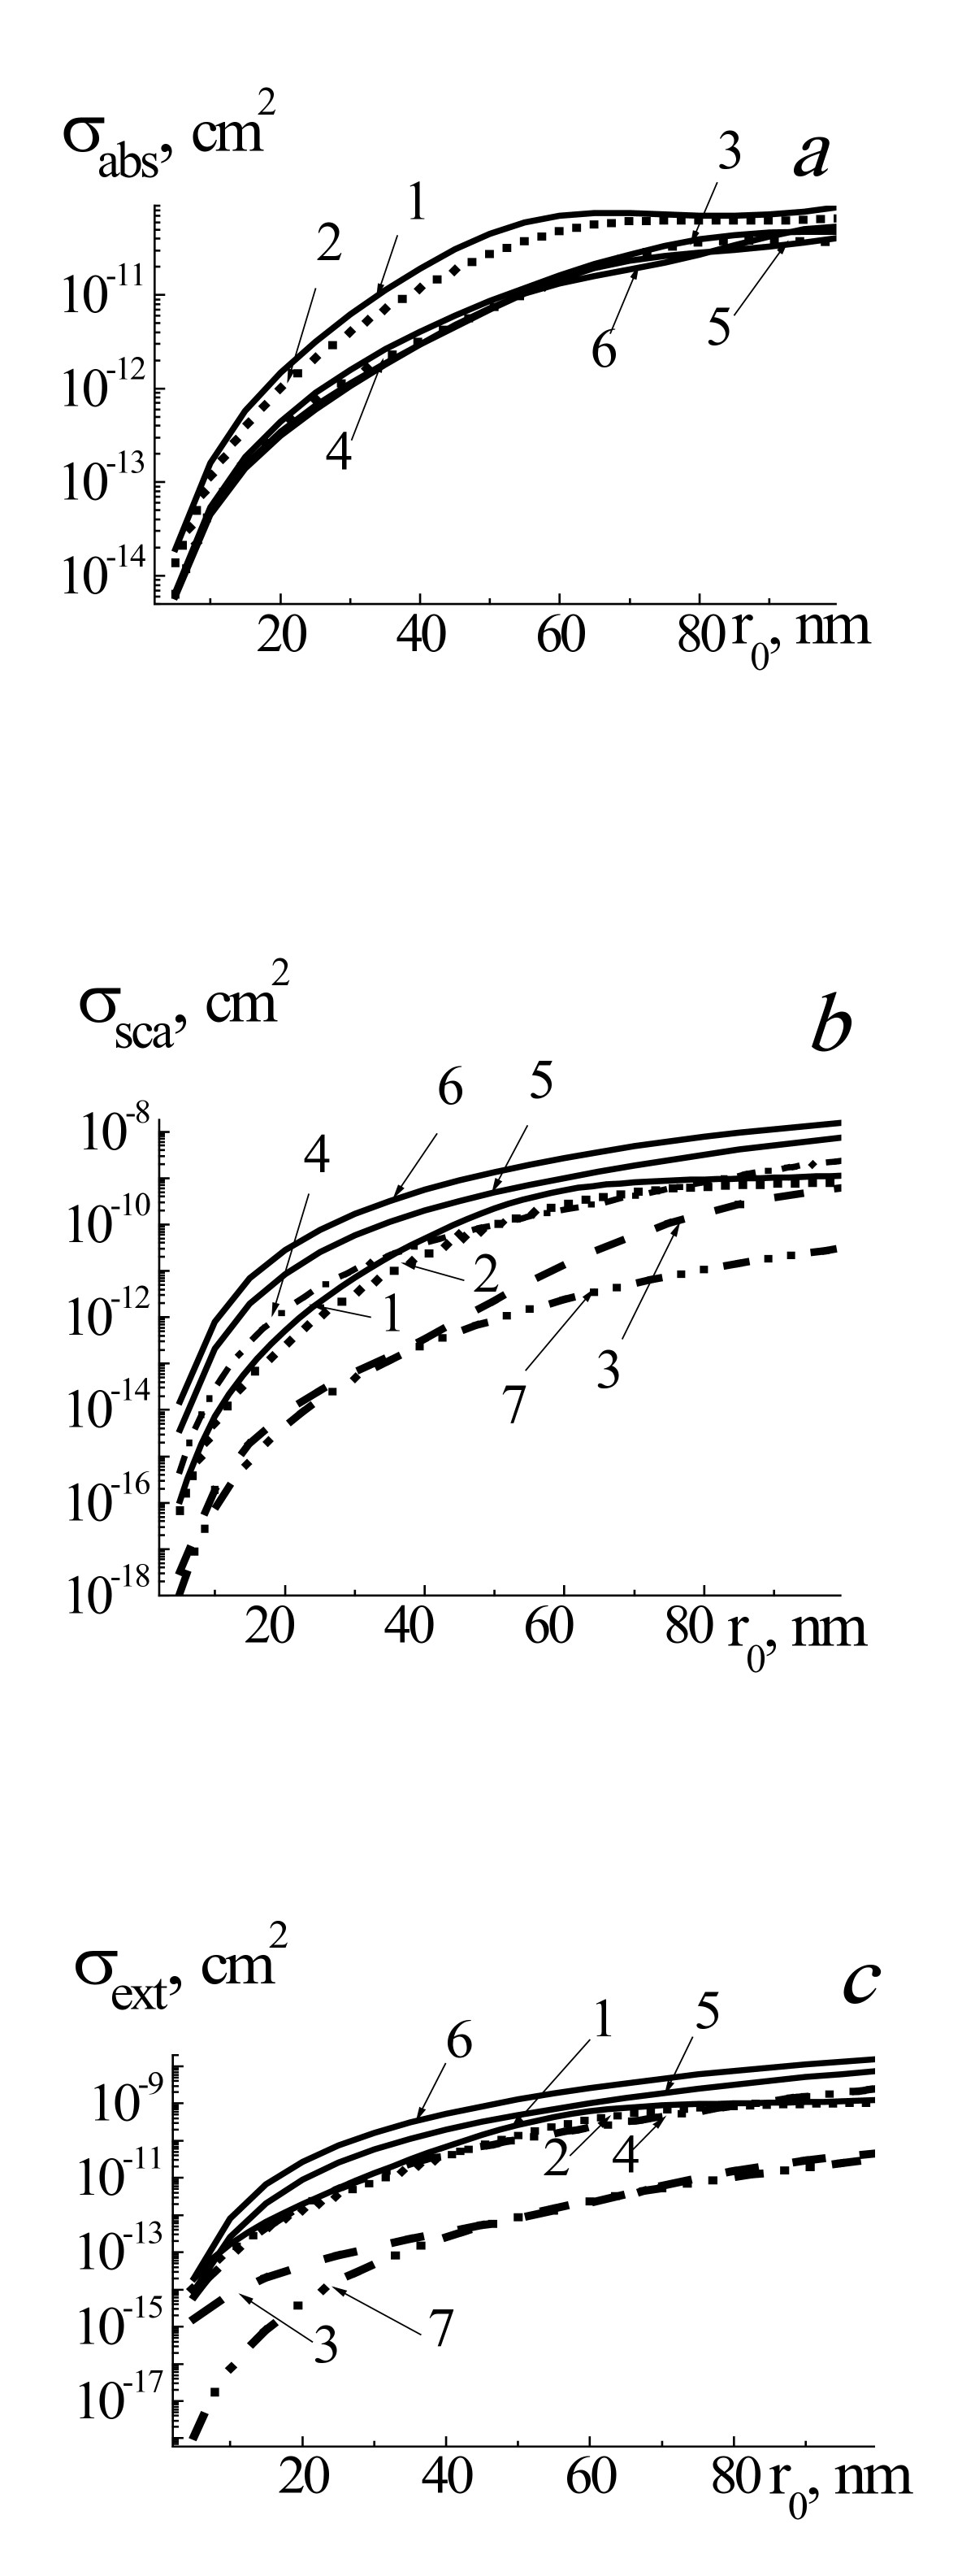 http://static-content.springer.com/image/art%3A10.1186%2F1556-276X-6-448/MediaObjects/11671_2011_Article_561_Fig2_HTML.jpg